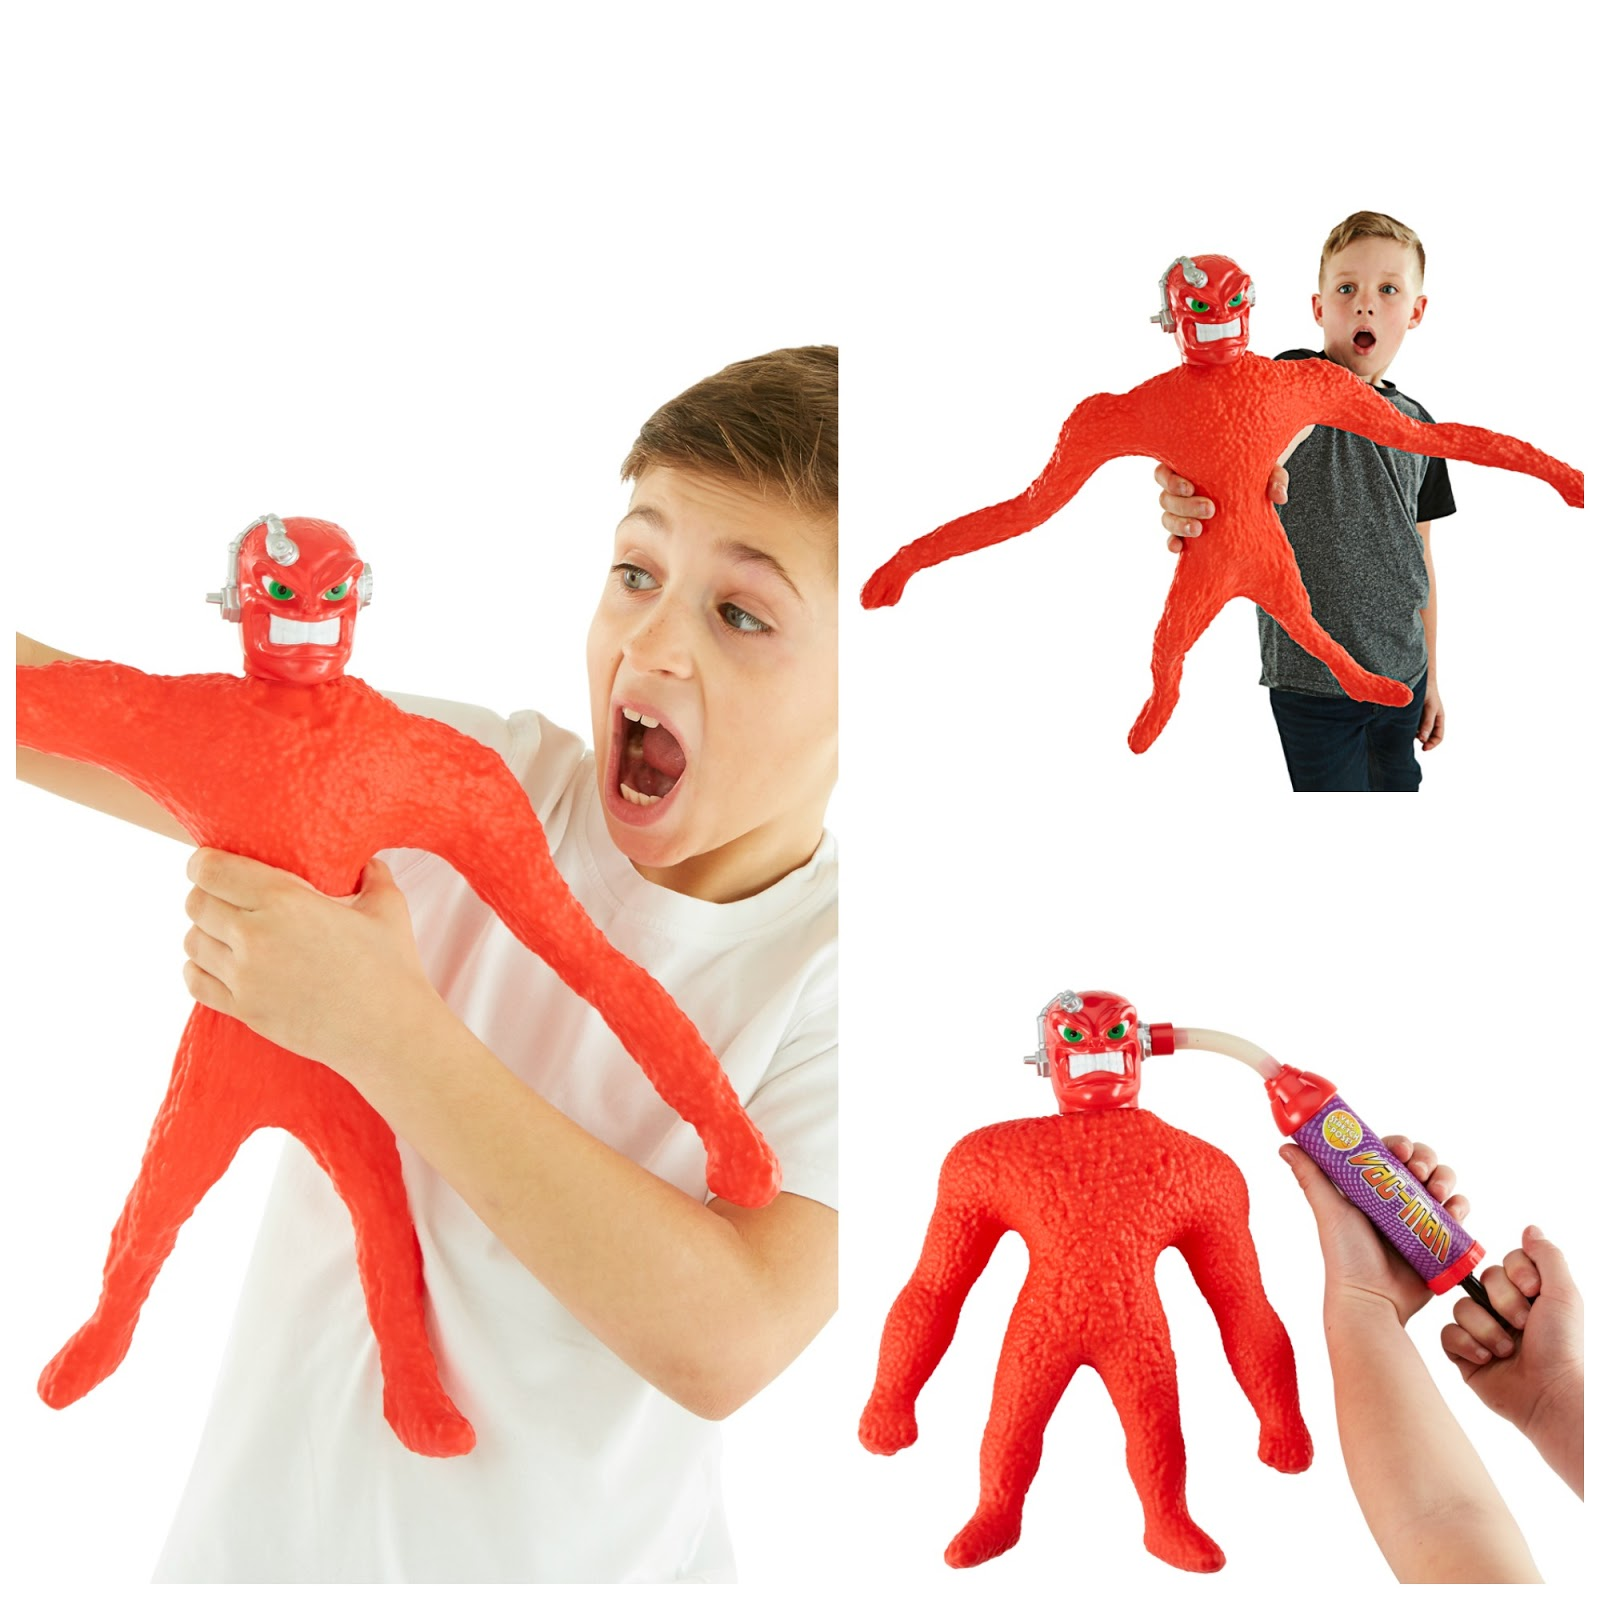 Vac Man promotional shots - see him stretch to 4 times his size